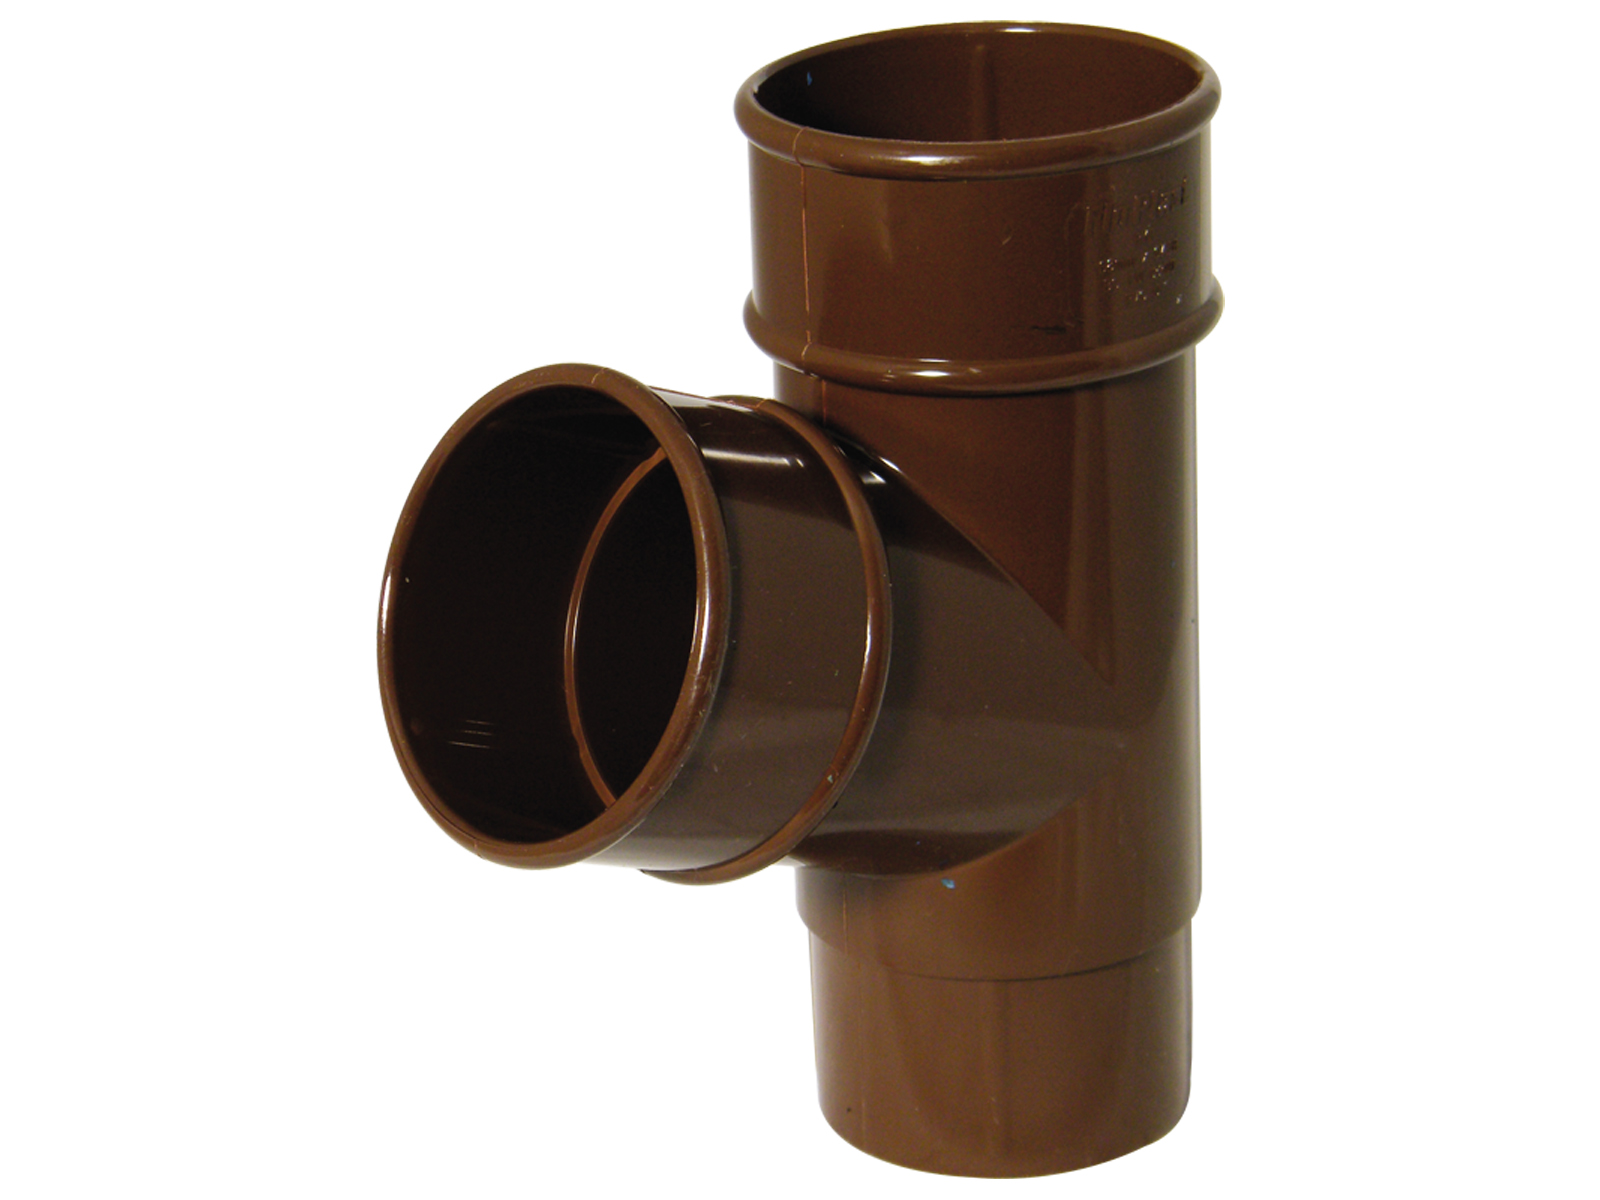 FLOPLAST RY1BR 68MM ROUND DOWNPIPE - 67.5* BRANCH - BROWN